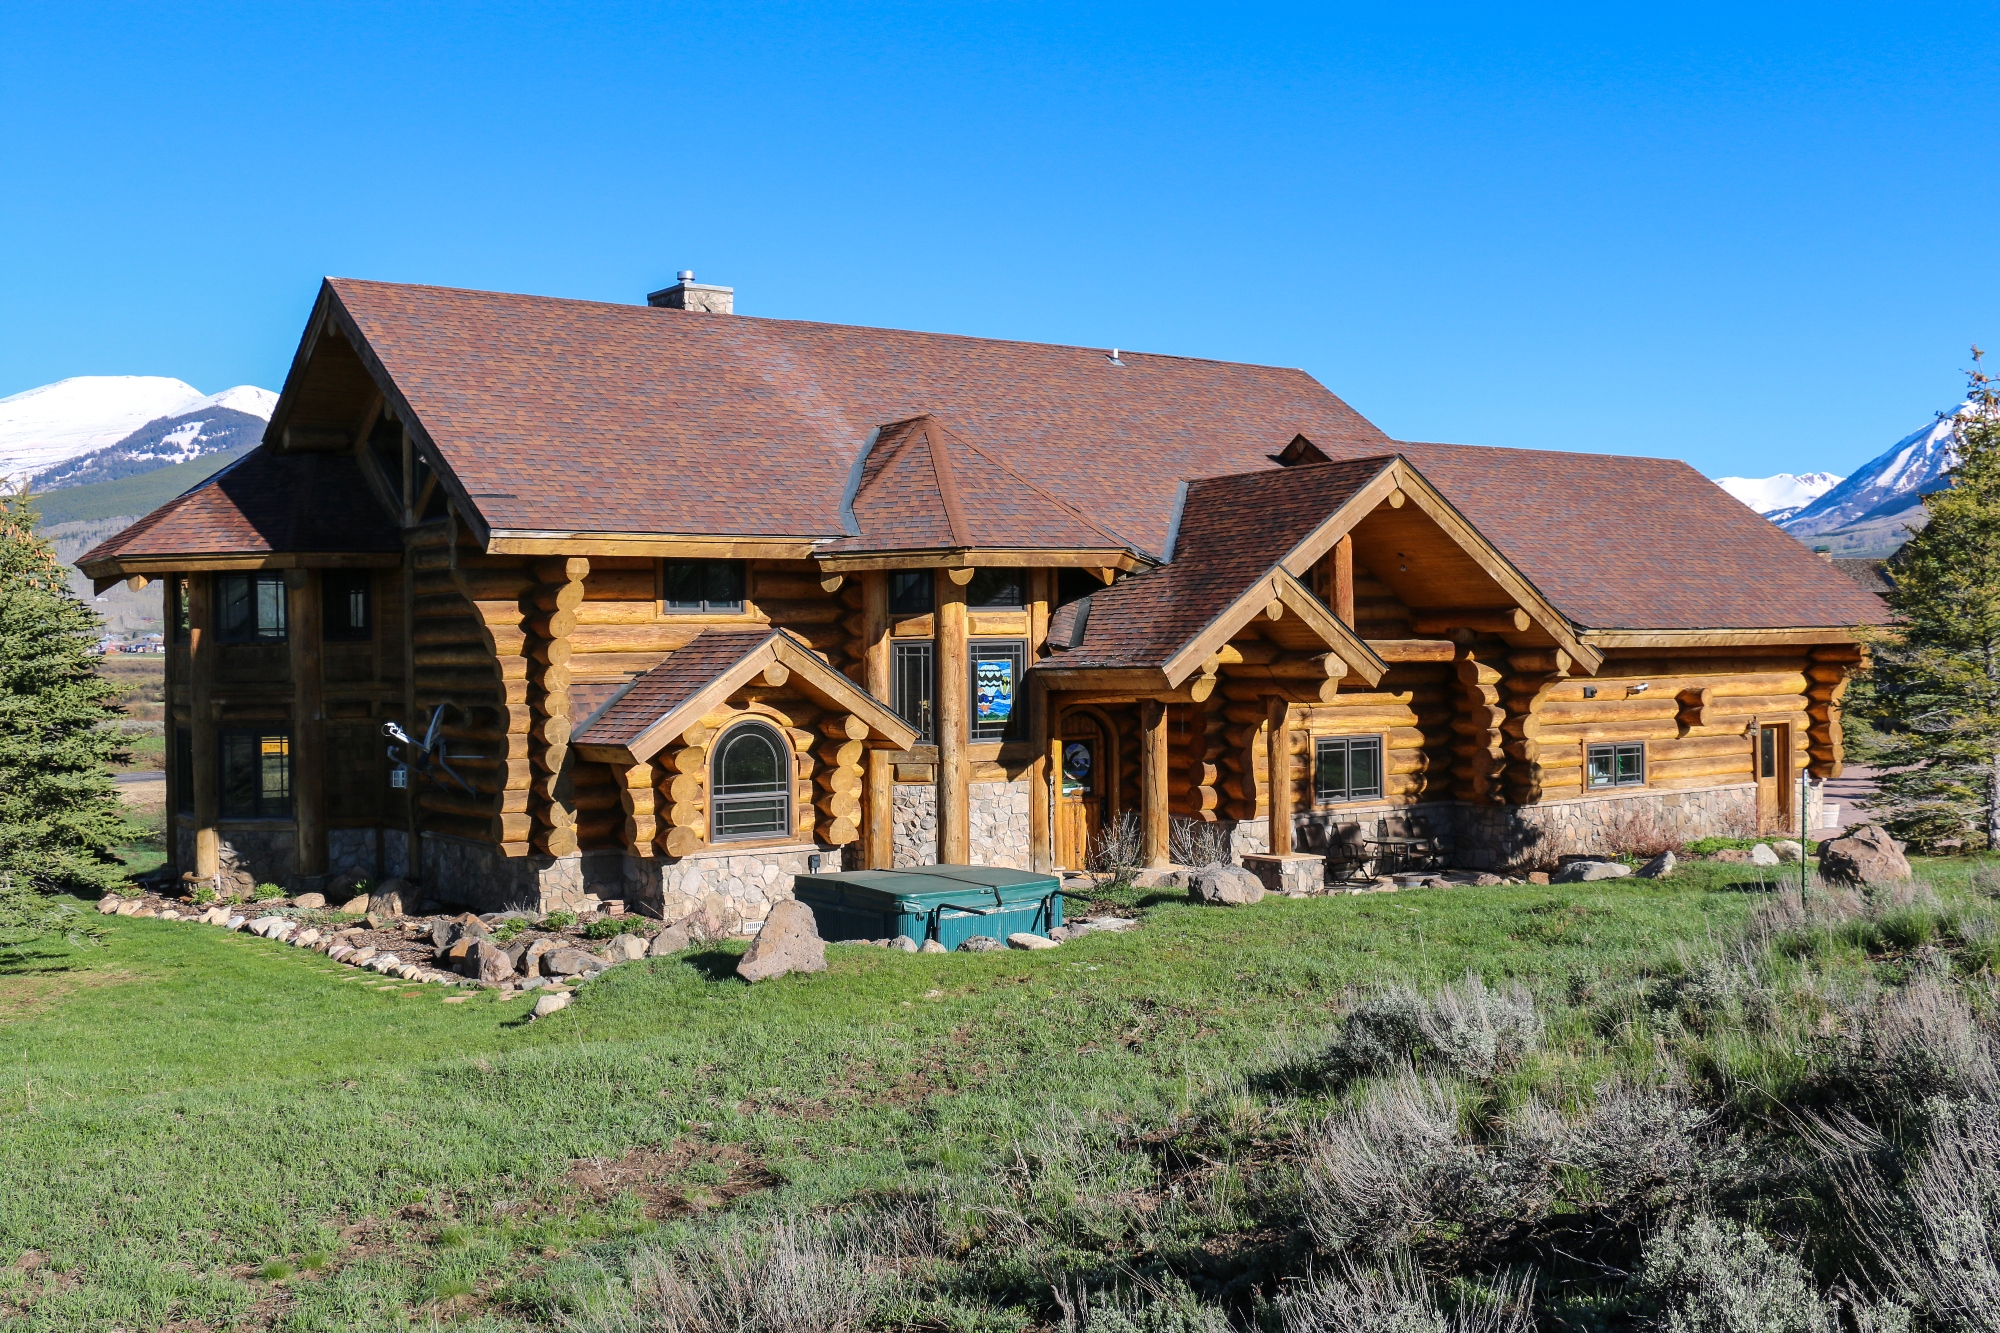 Single Family Home for Sale at Luxury Log Home 163 E Silver Sage Dr Crested Butte, Colorado 81224 United States